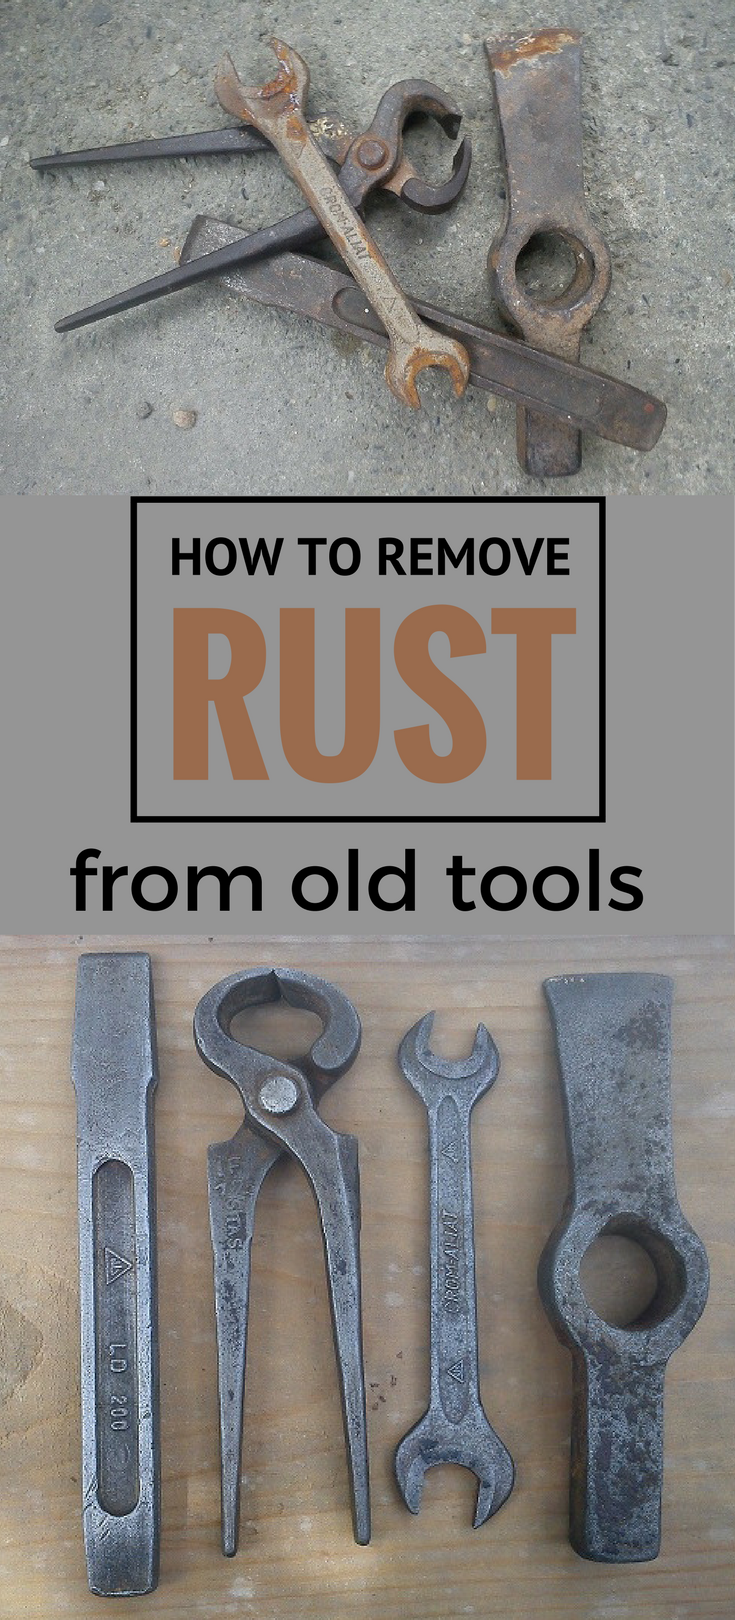 How To Remove Rust From Old Tools Ncleaningtips Com Cleaning